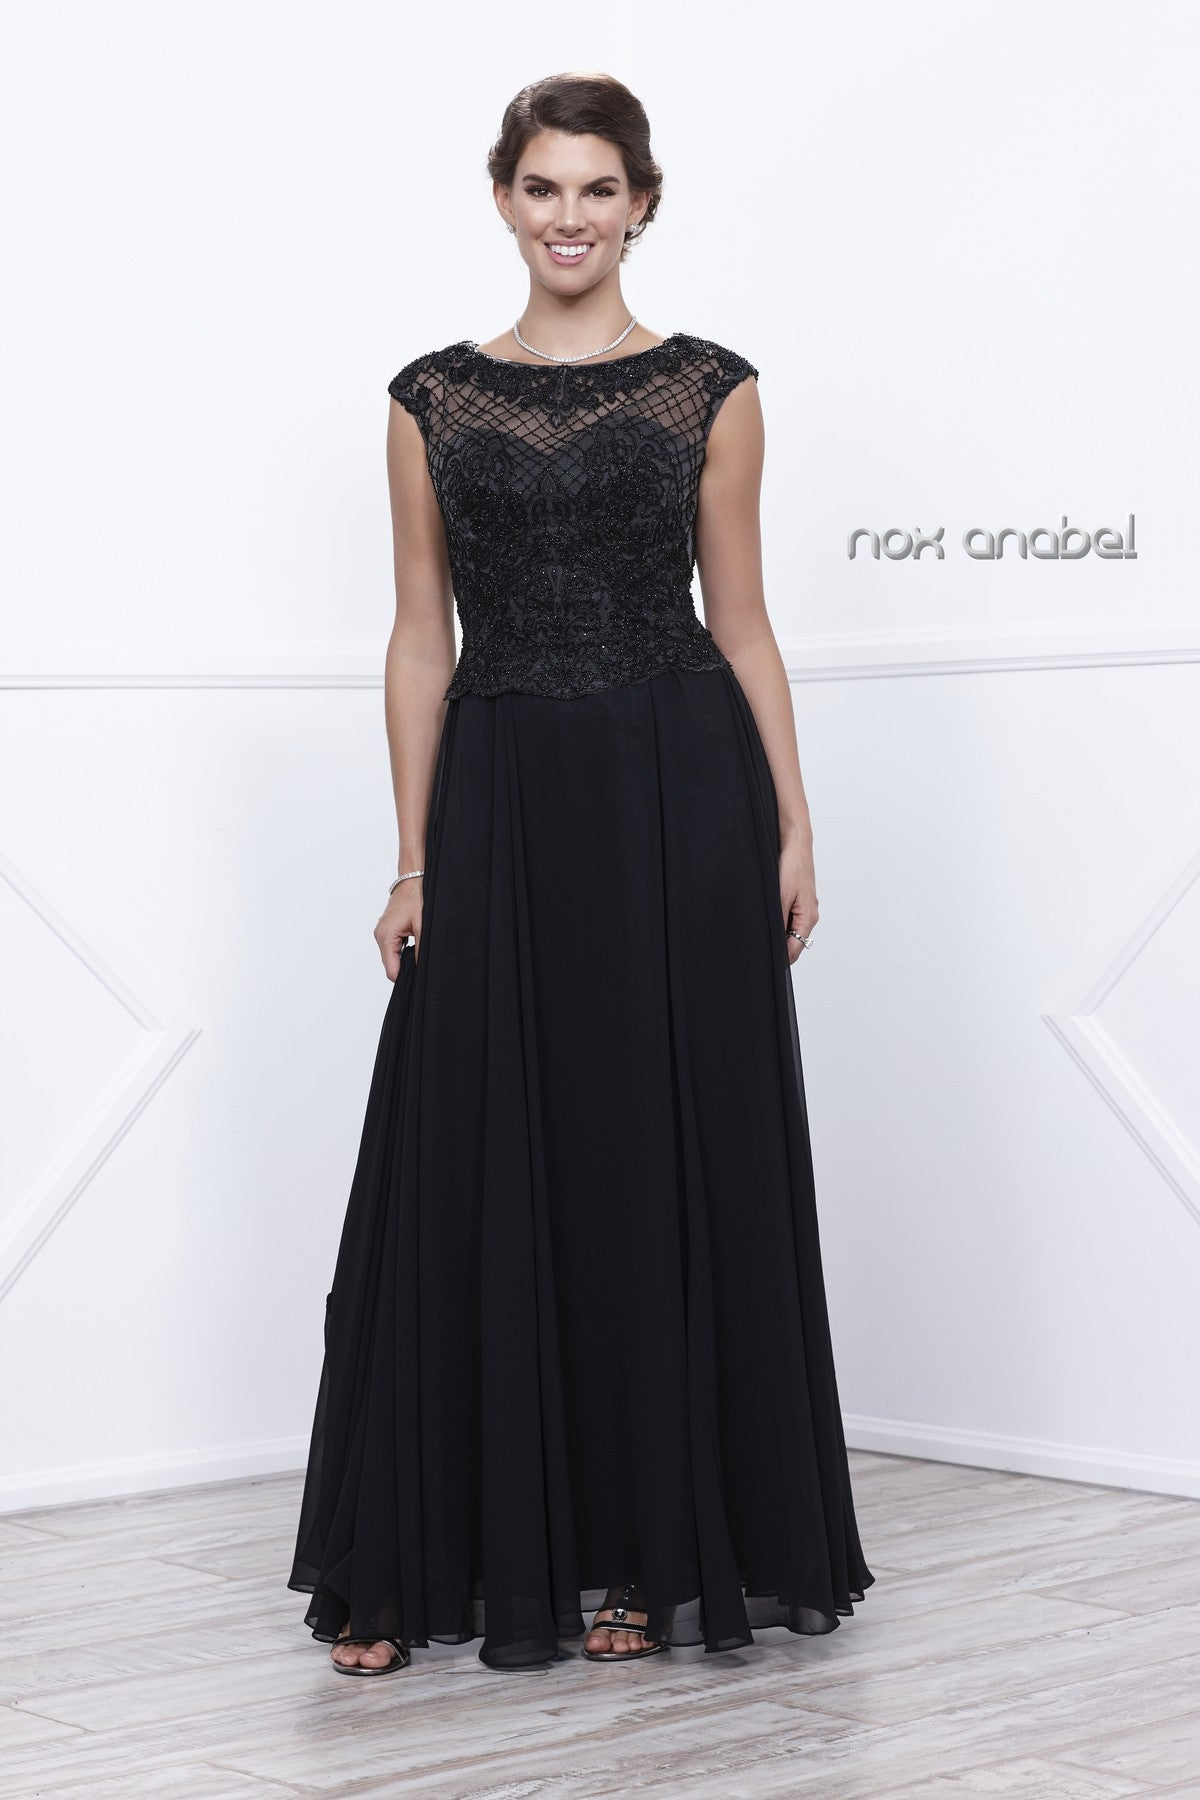 Cap Sleeves Embellished Bodice A-Line Formal Dress Black with Jacket